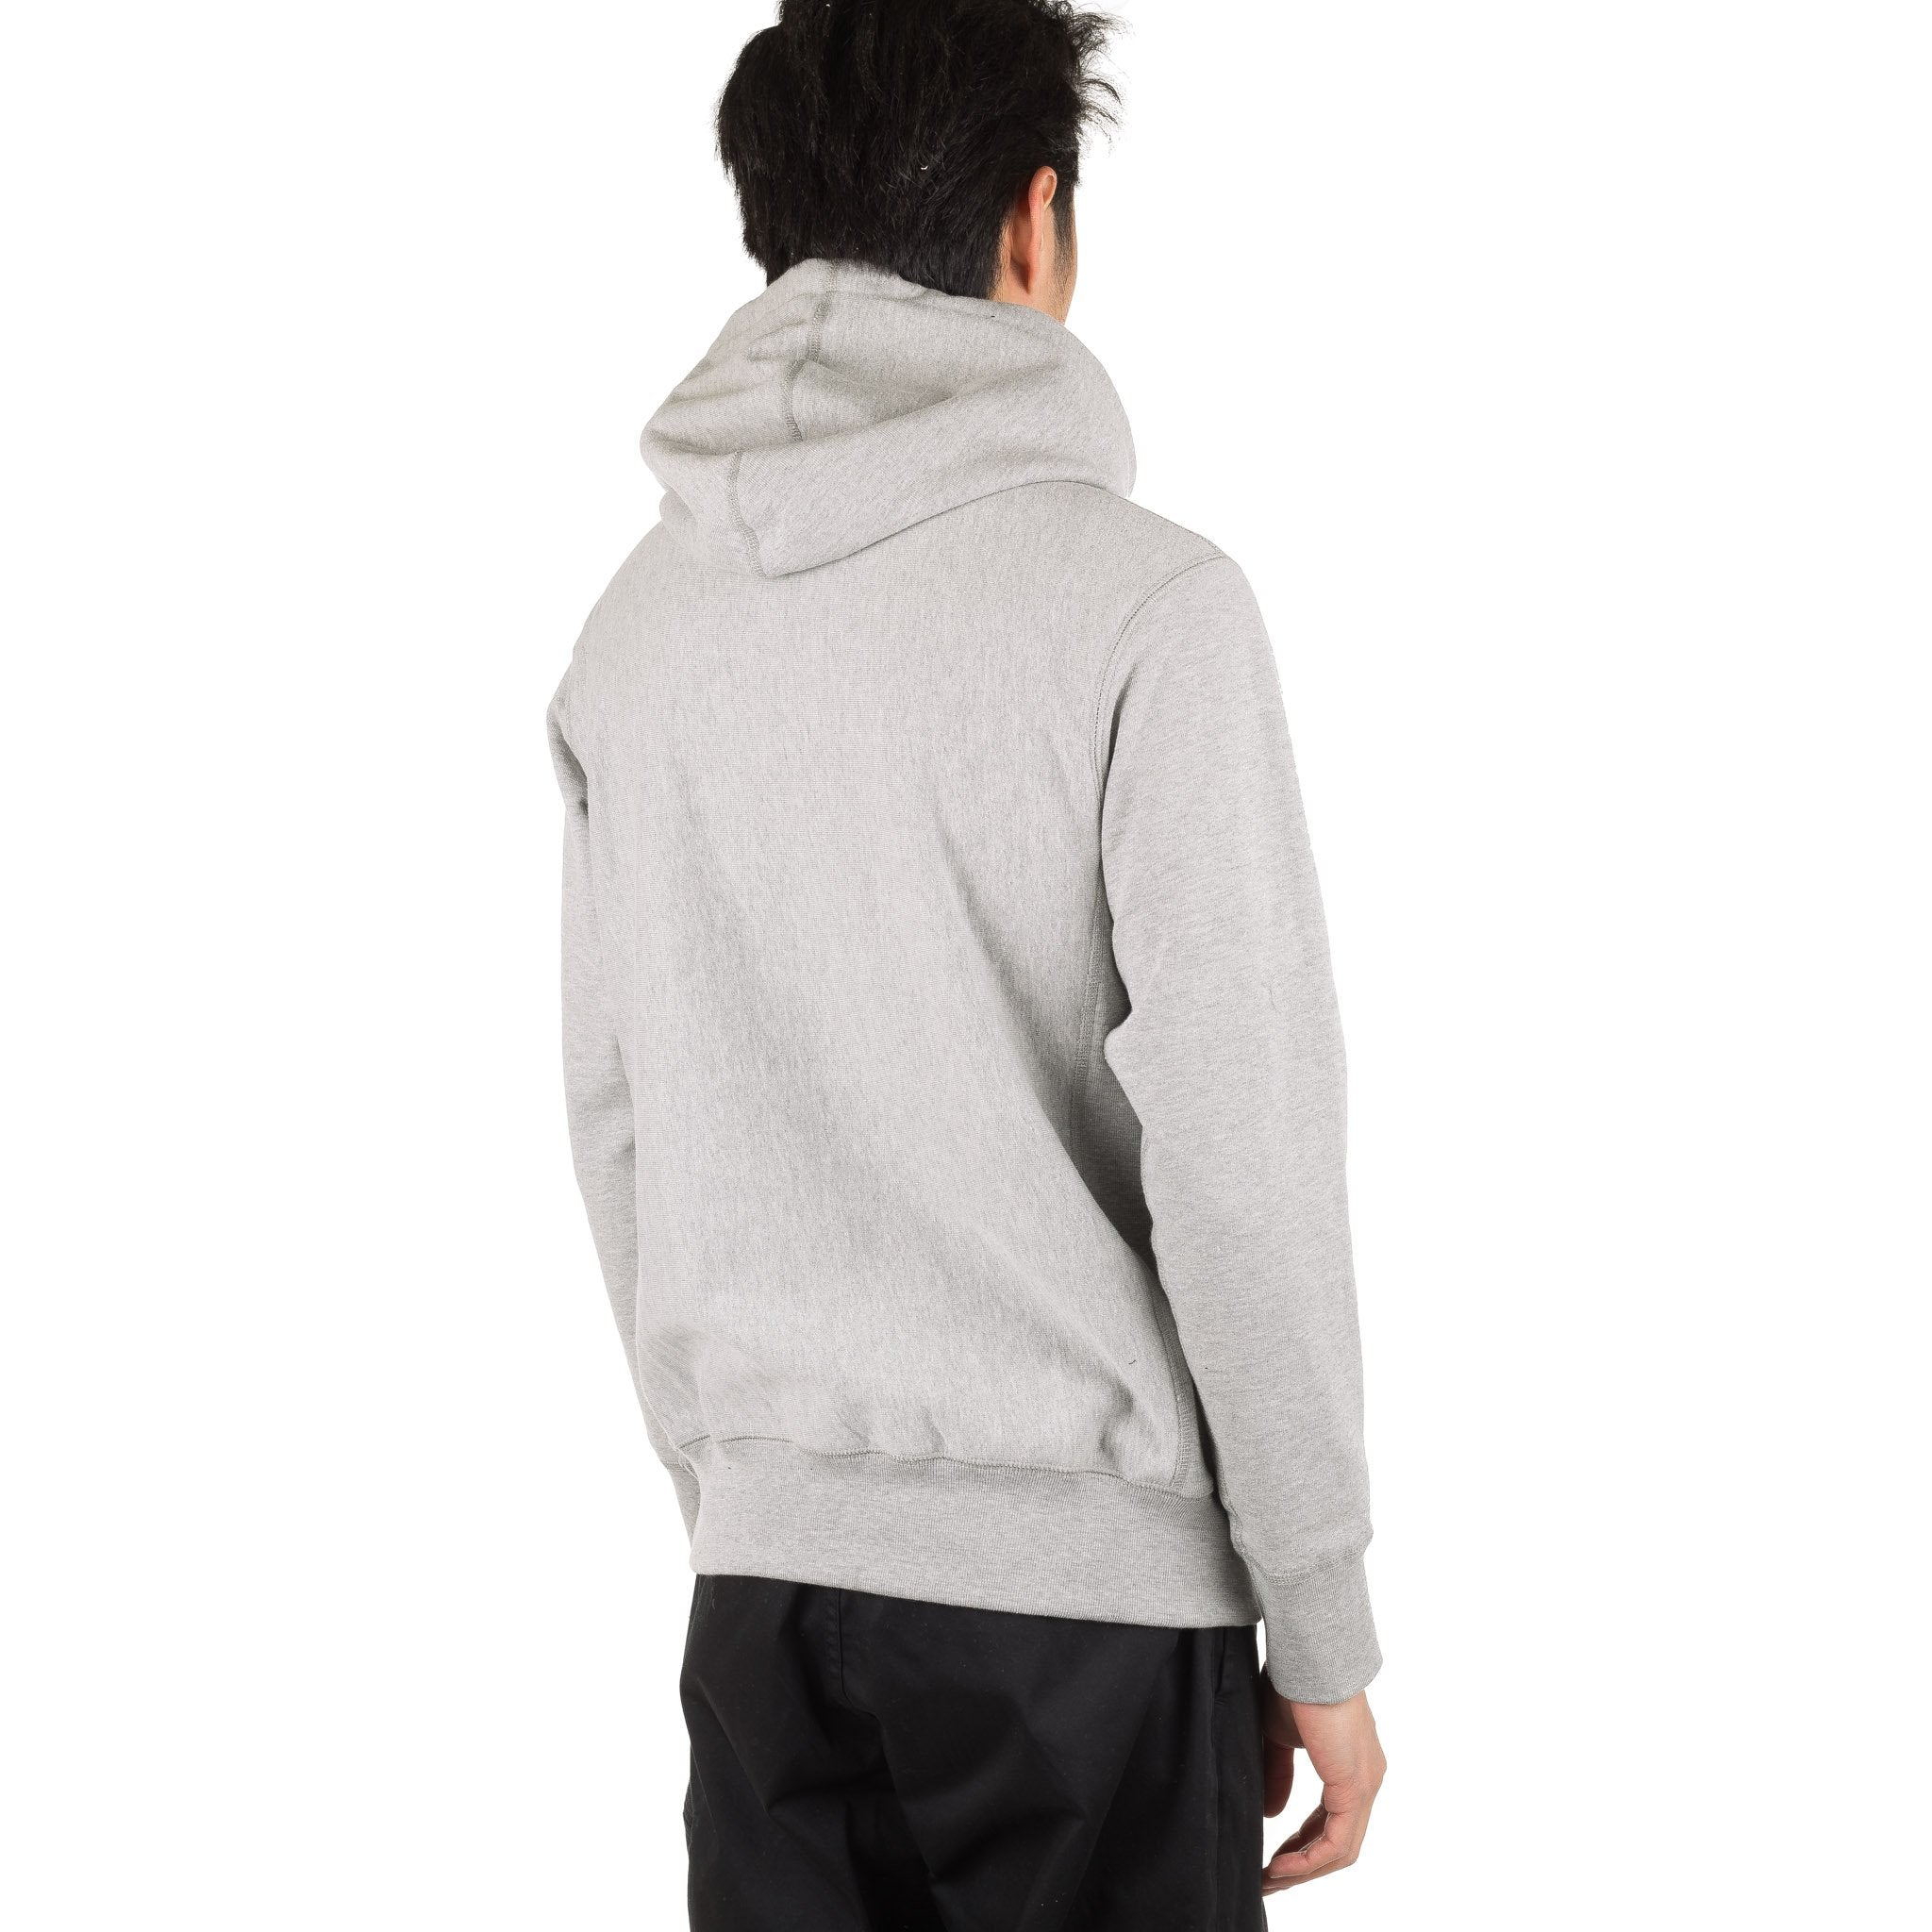 RBW Box Logo Sweatshirt Grey